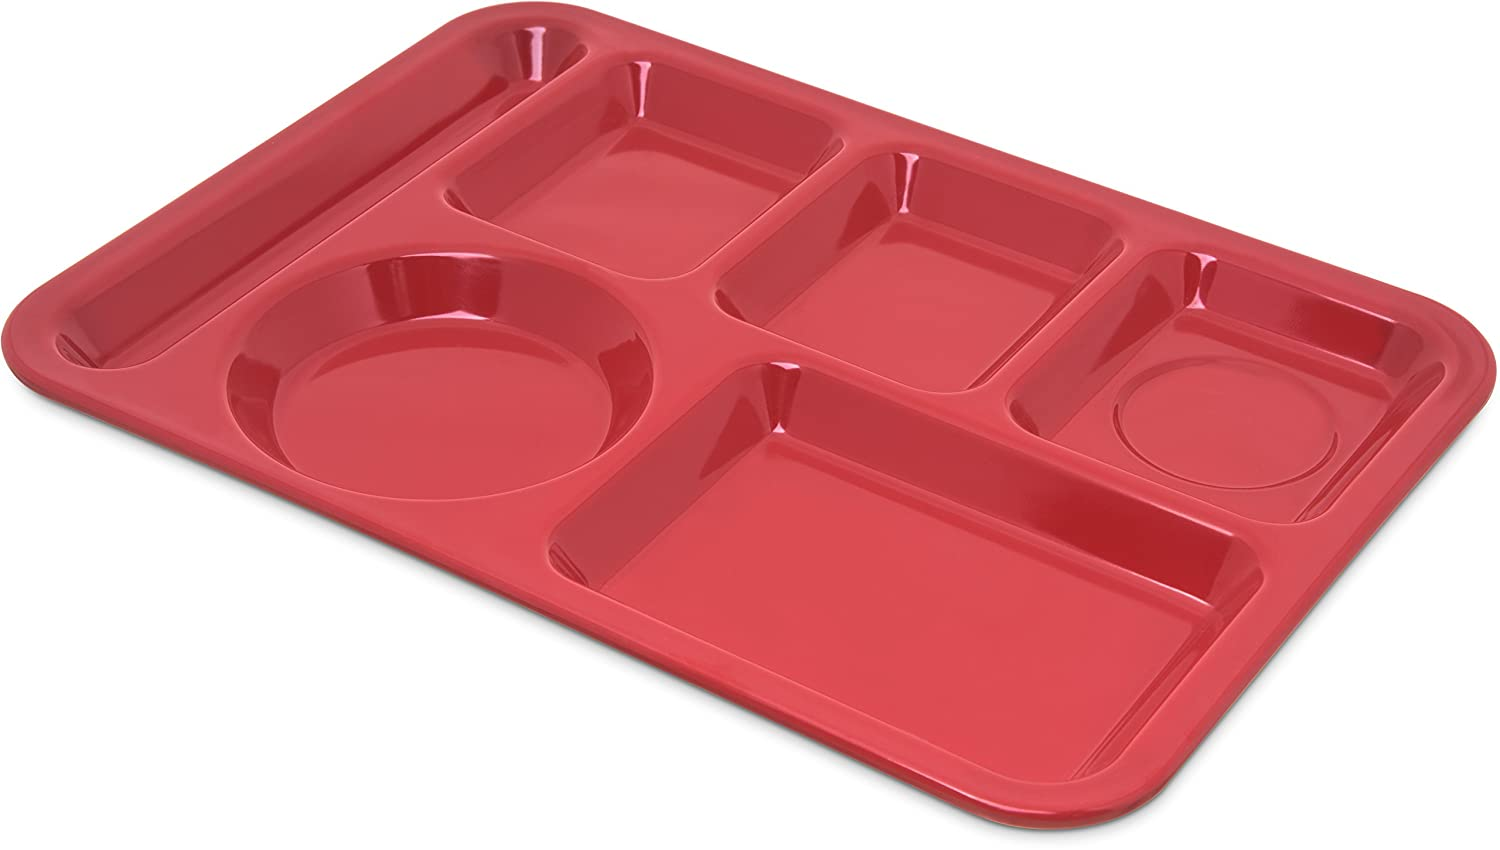 Carlisle 4398005 Left-Hand Heavy Weight 6-Compartment Cafeteria/Fast Food Tray, 10